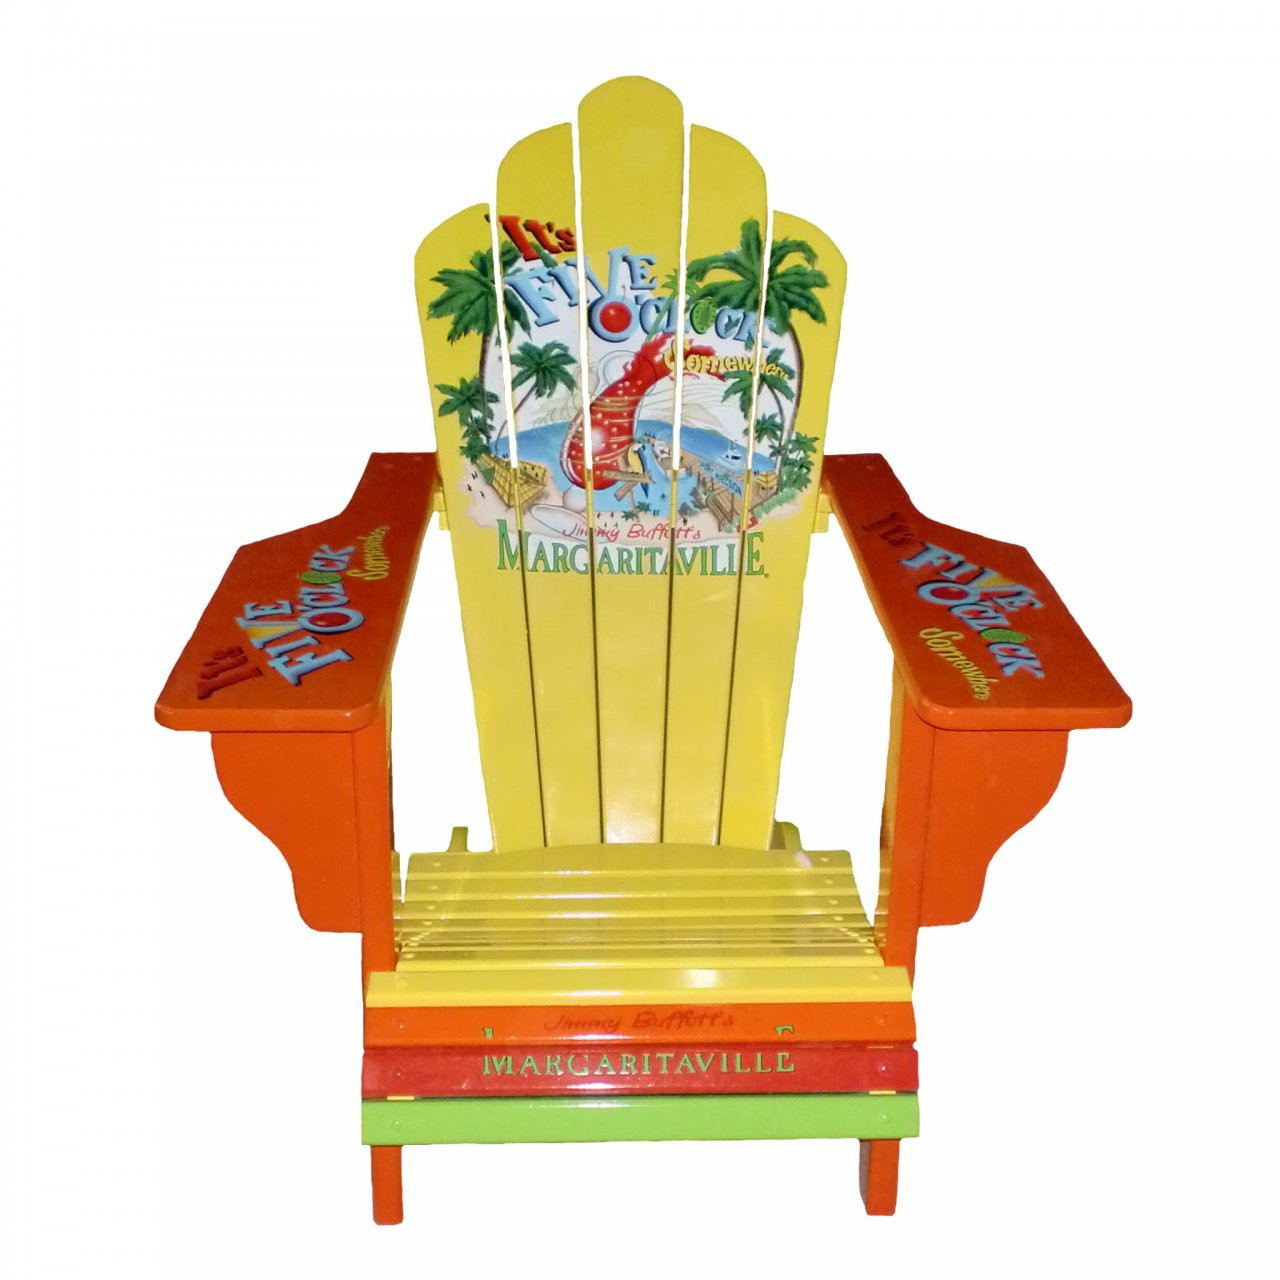 margaritaville chairs for sale folding with storage rack 5 00 adirondack chair apparel store